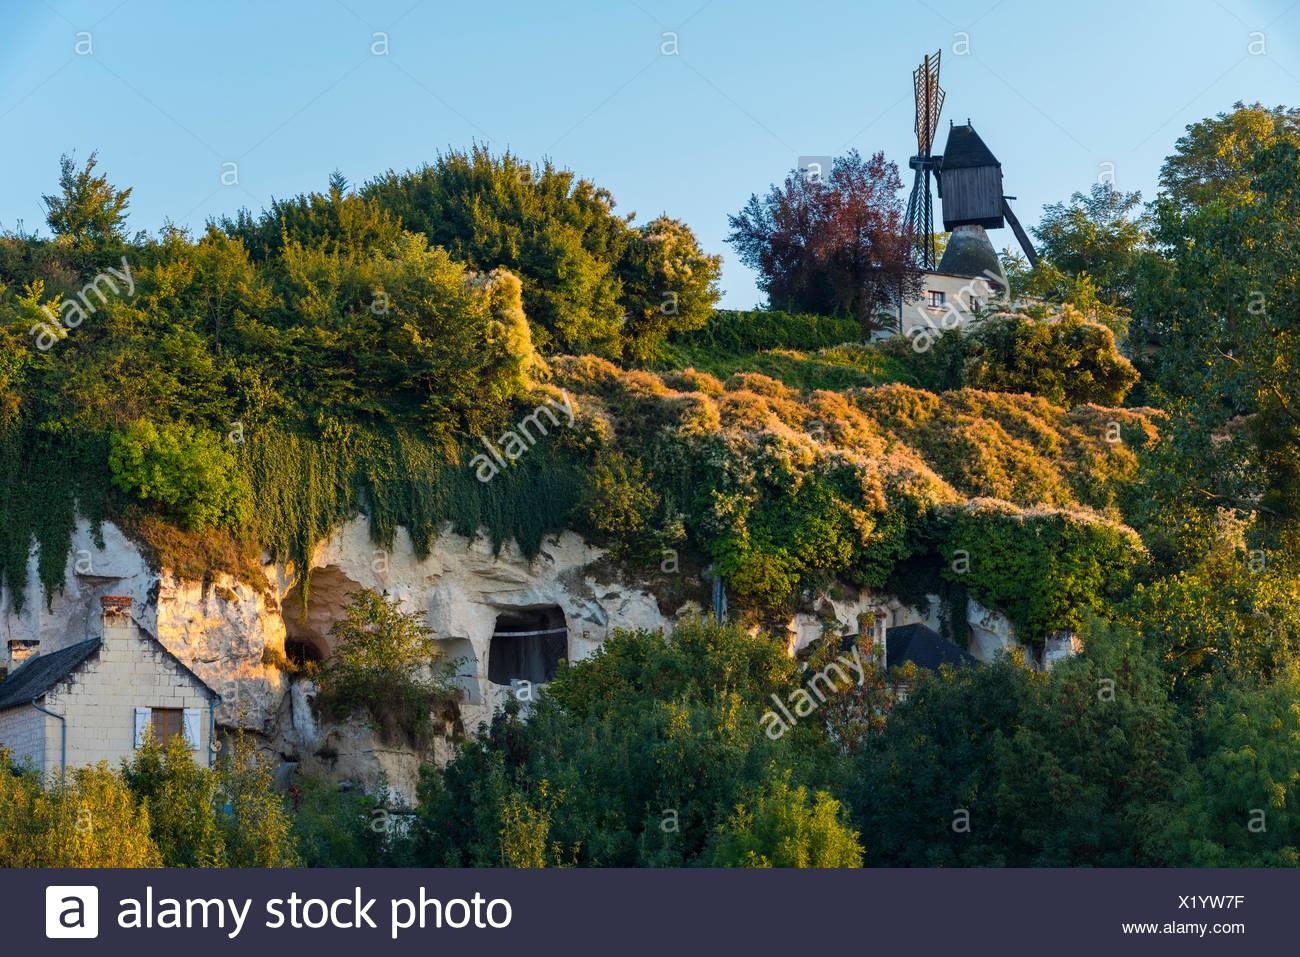 Windmill Of The Val Hulin And Troglodytic Houses At Turquant, Saumur  District, Maine